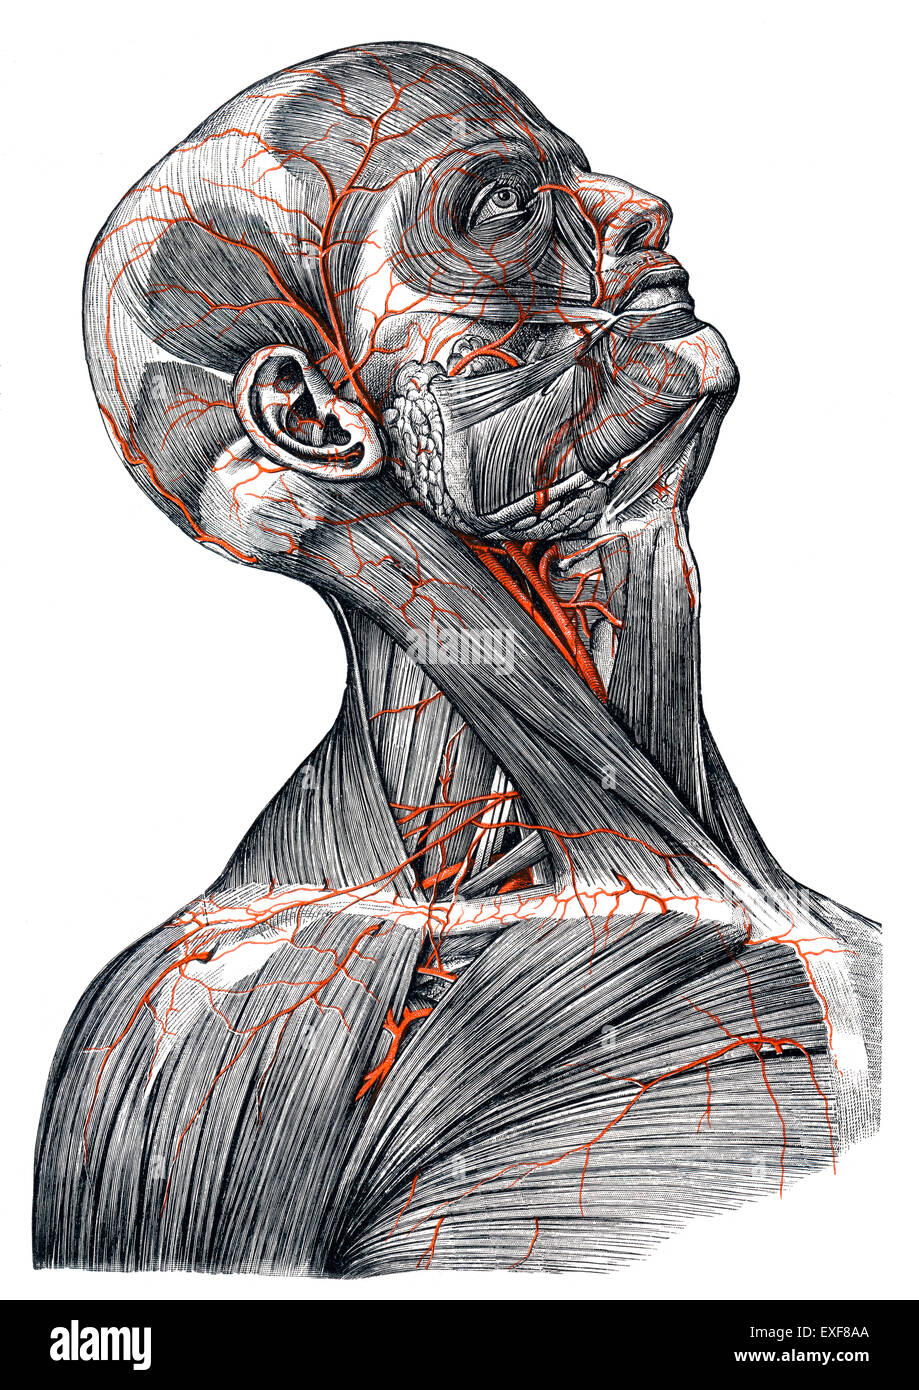 Arteries in the human head, - Stock Image